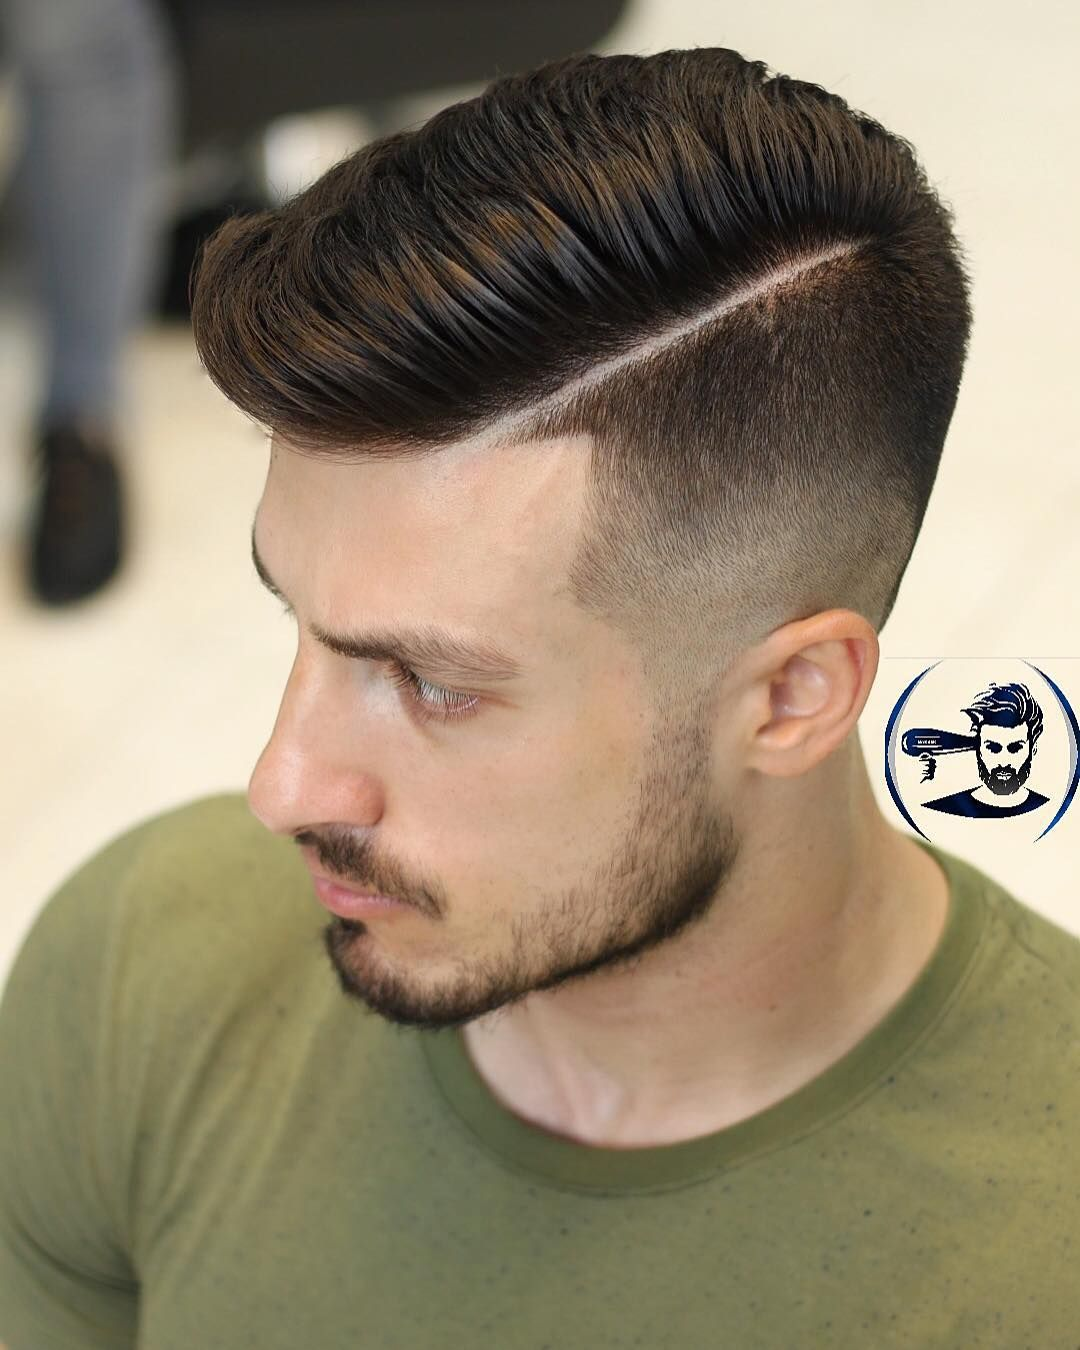 Men Hair Style Inspiration 169K Likes 206 Comments  Hair Man Styles Hairmanstyles On